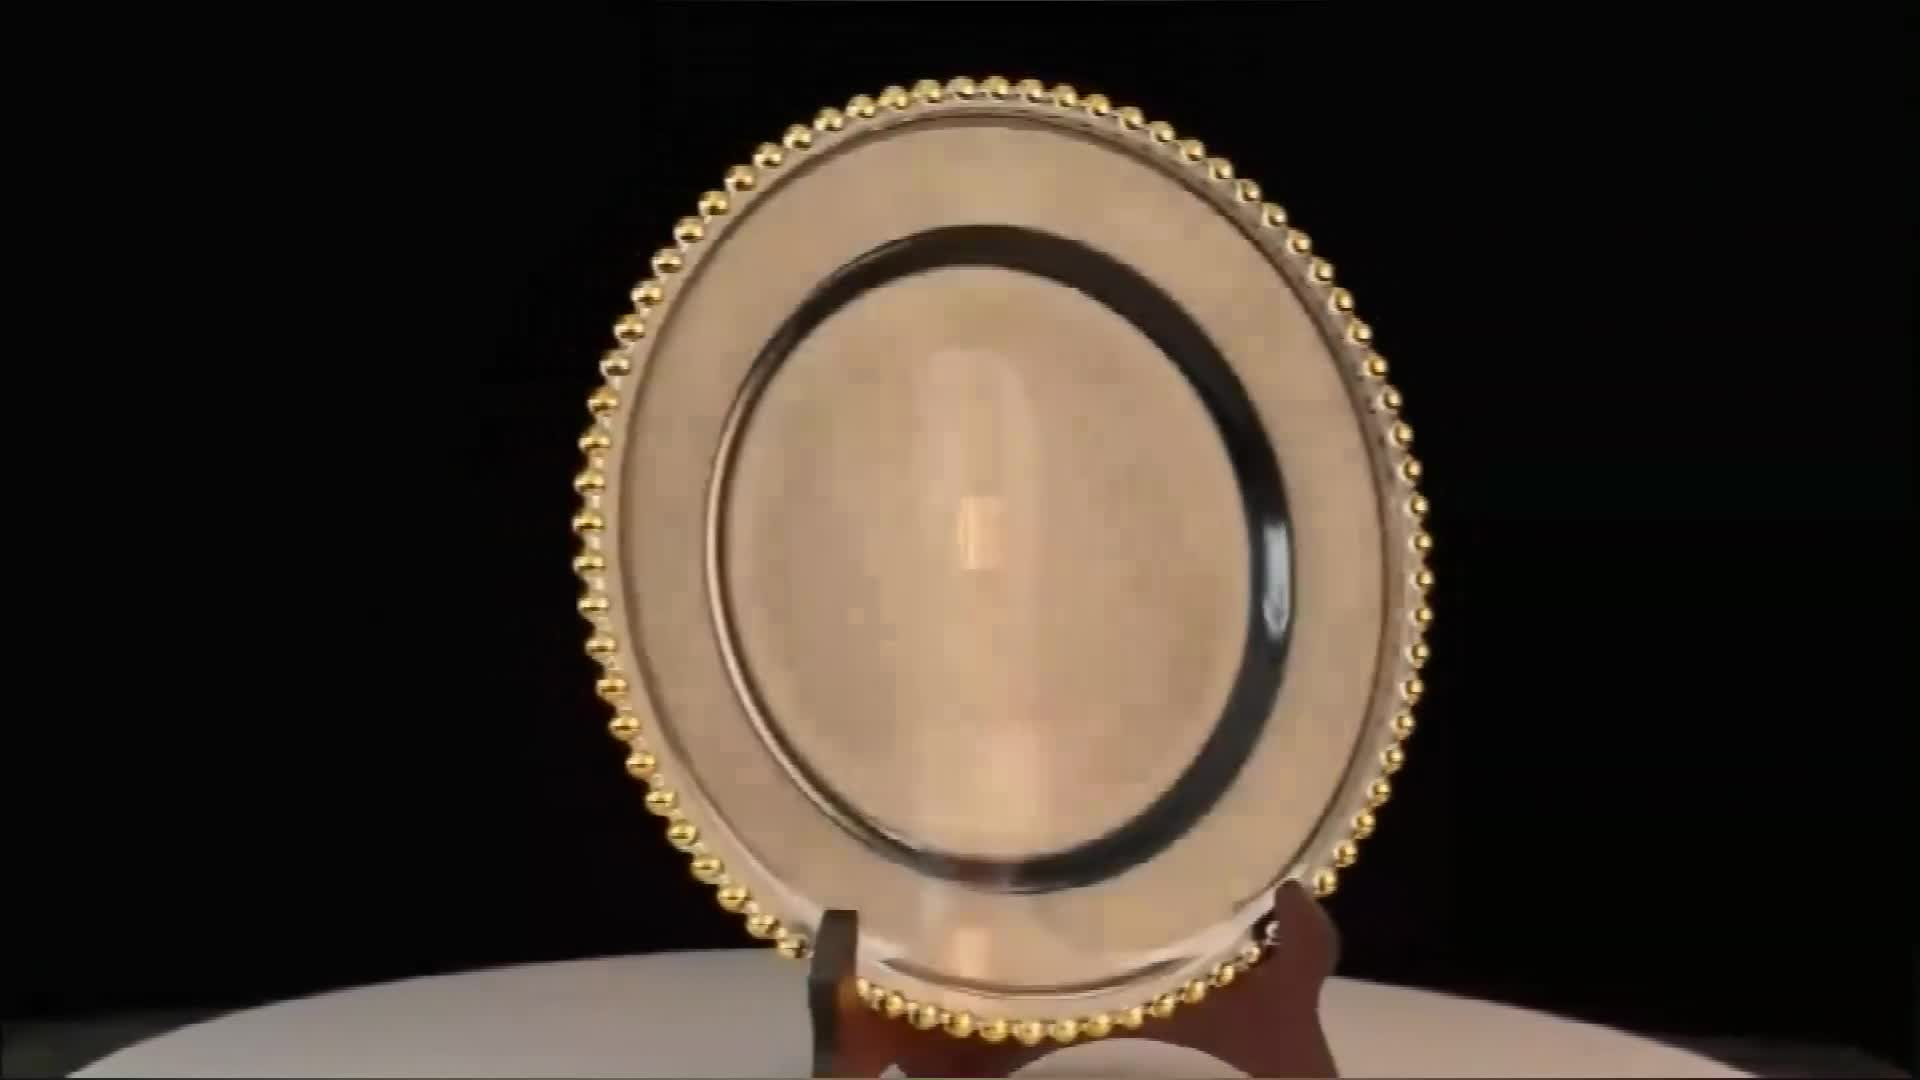 13 inch golden silver round wedding glass charger plate